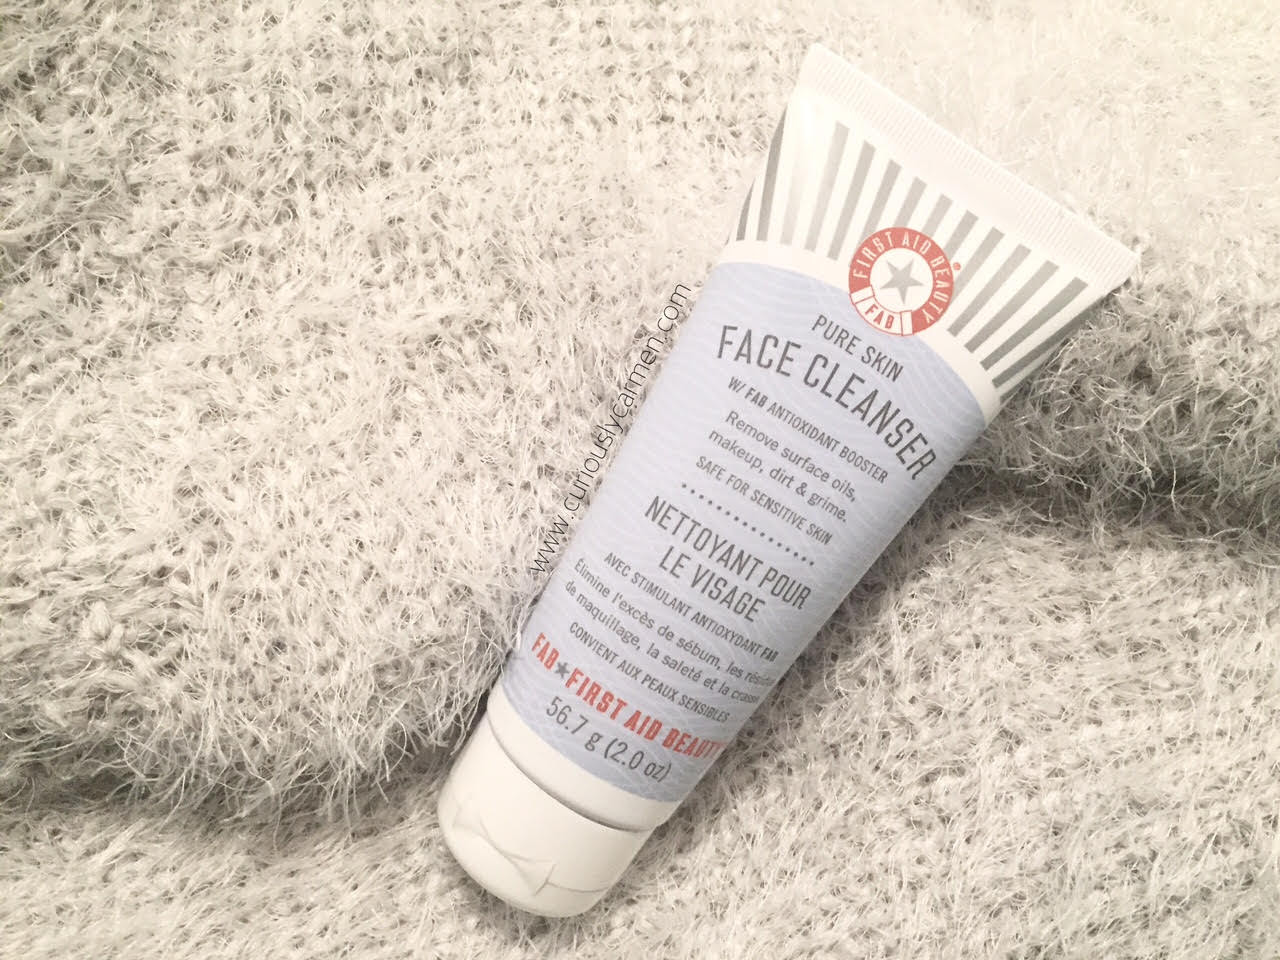 First Aid Beauty Face Cleanser - Curiously Carmen